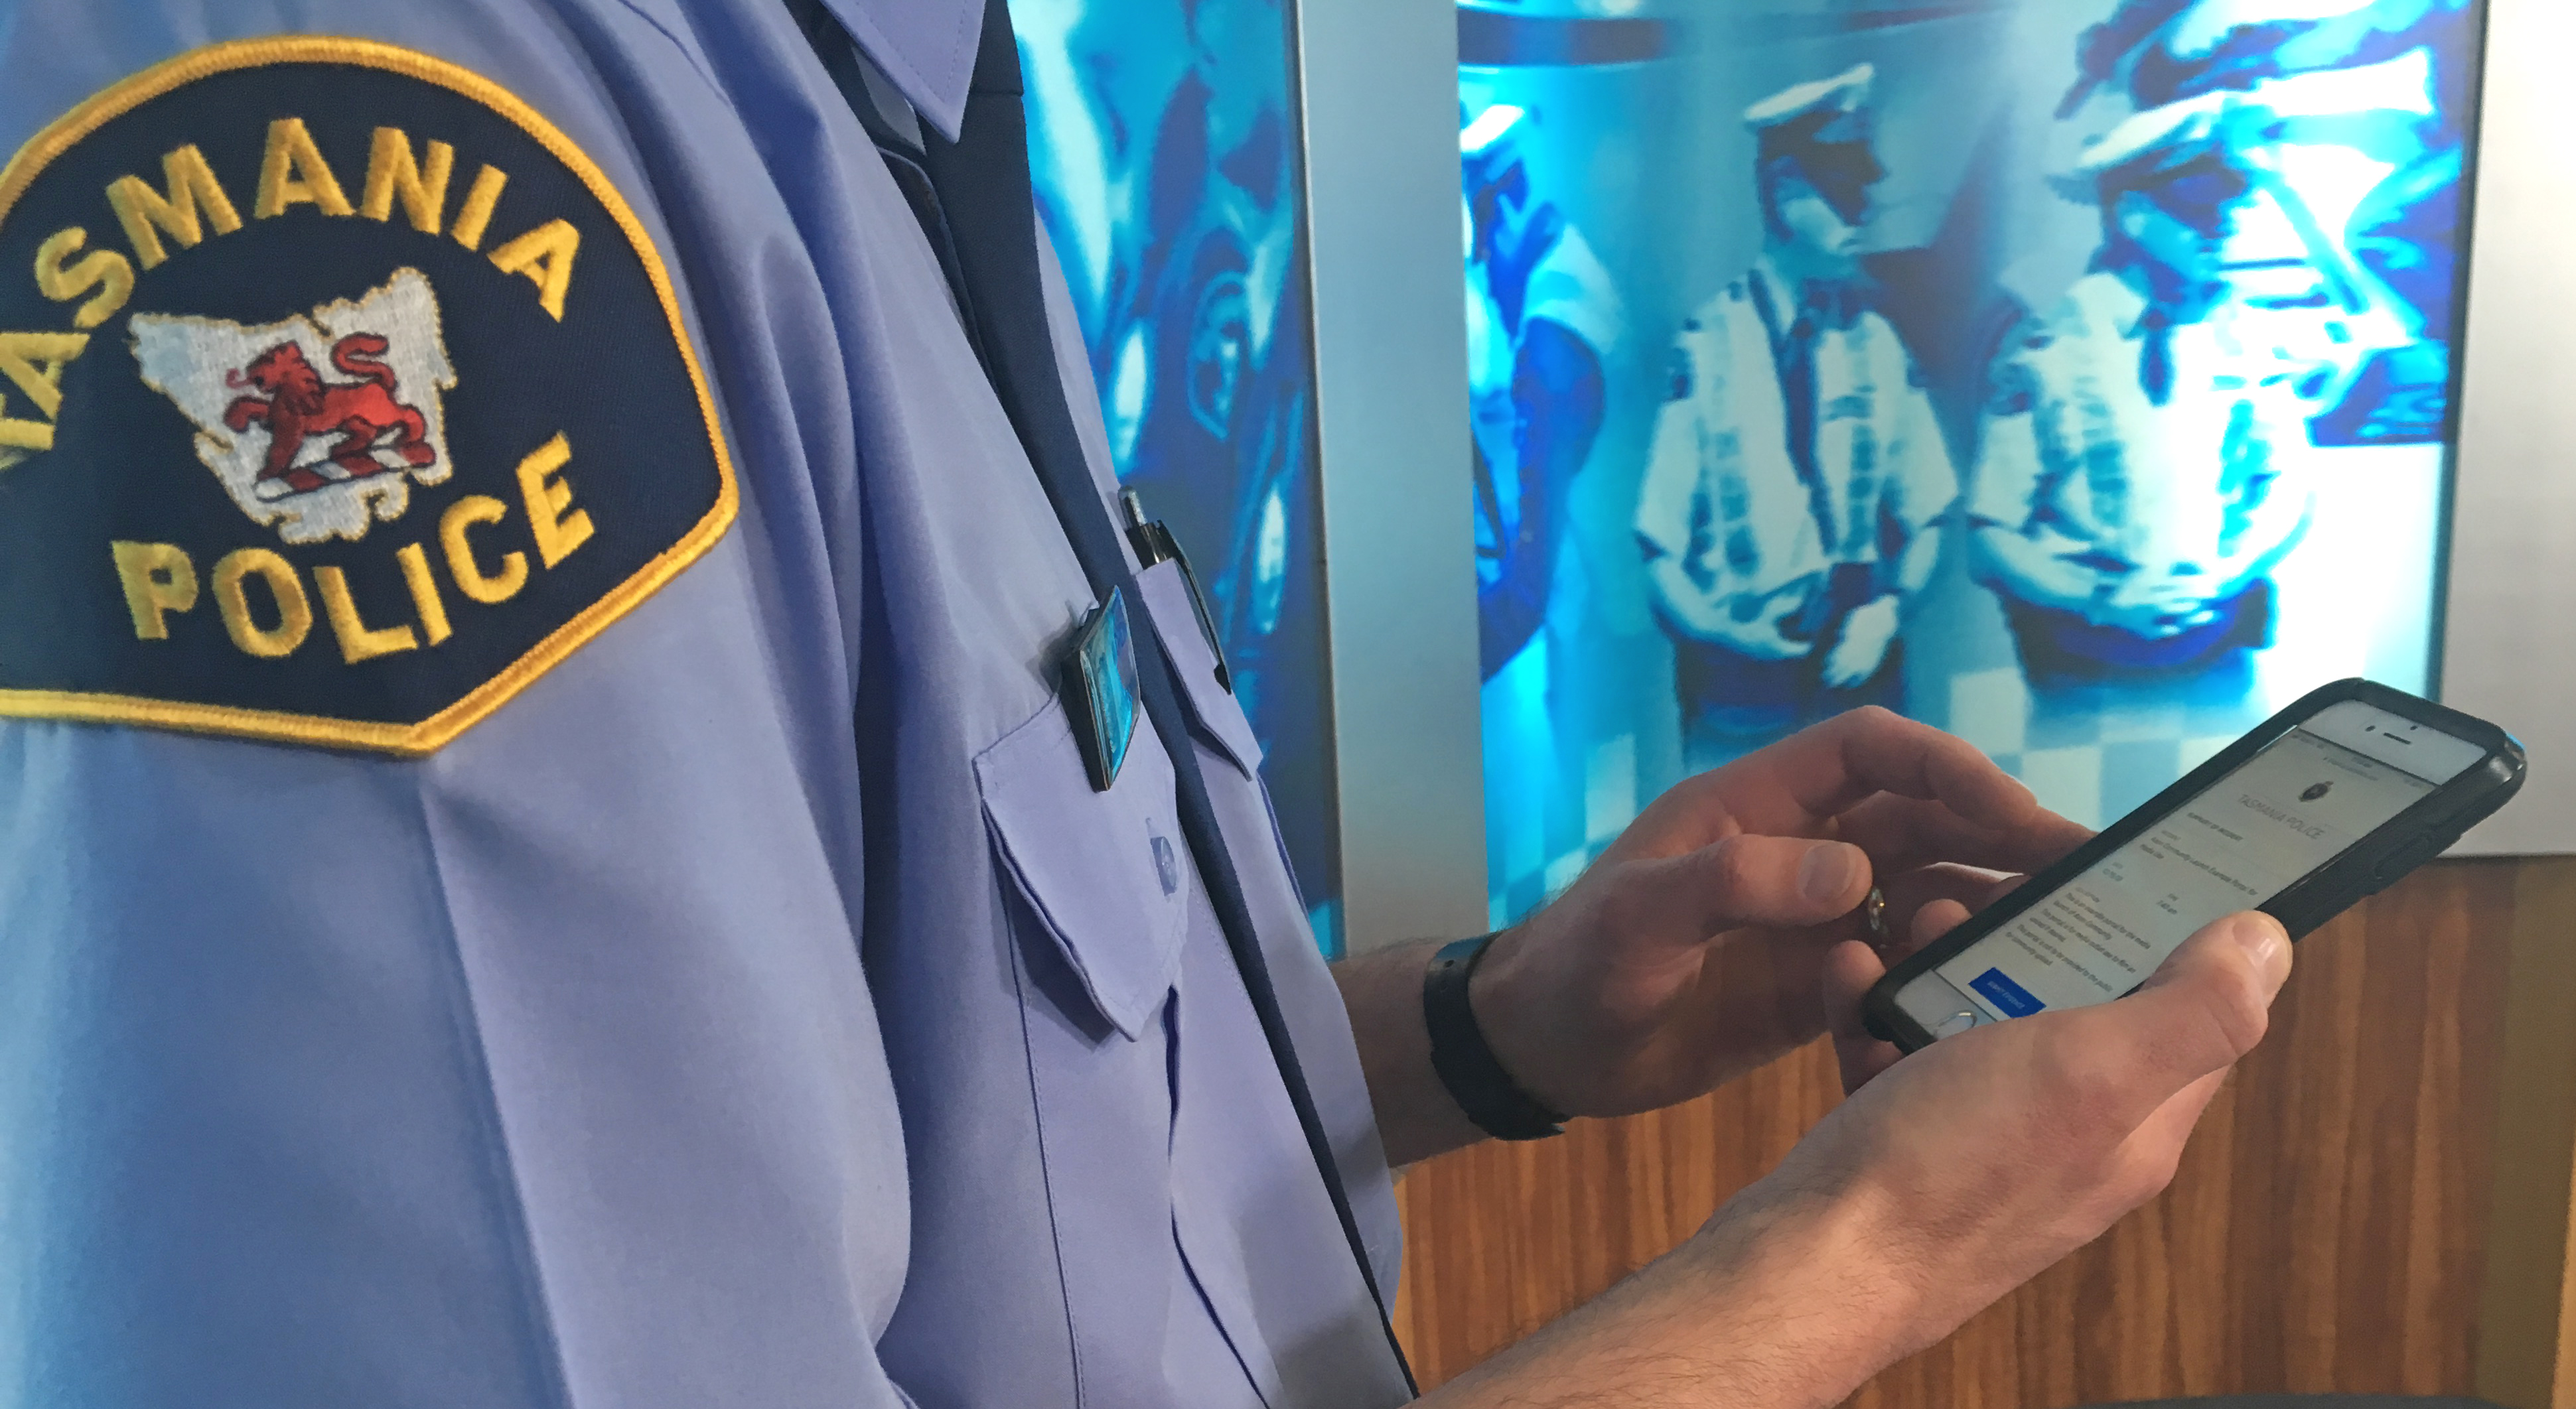 Police officer in uniform accessing Axon Community portal on mobile phone